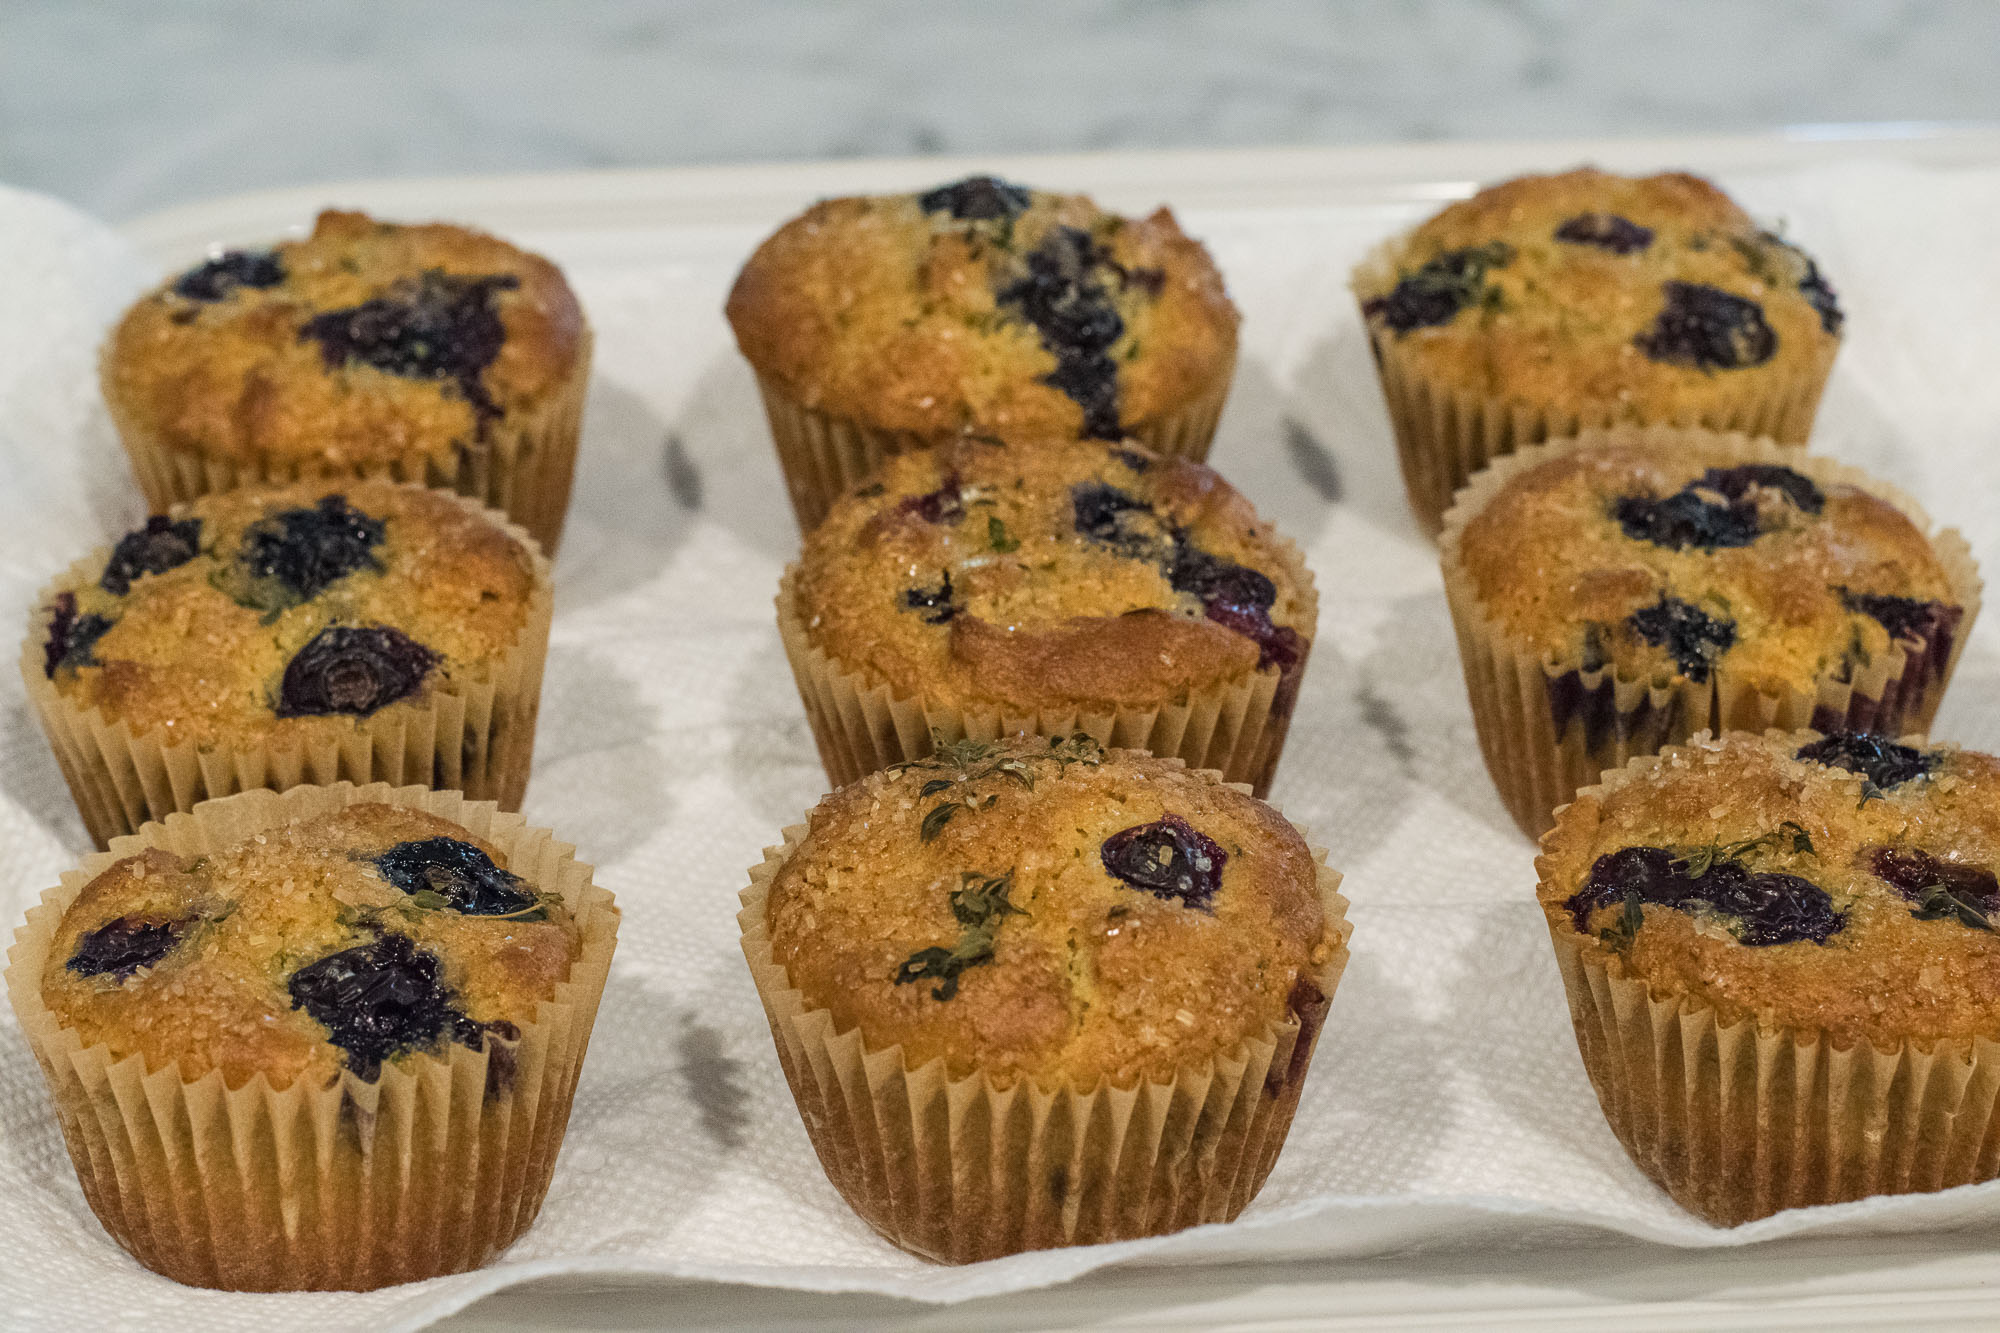 Blueberry Lemon and Thyme Muffins